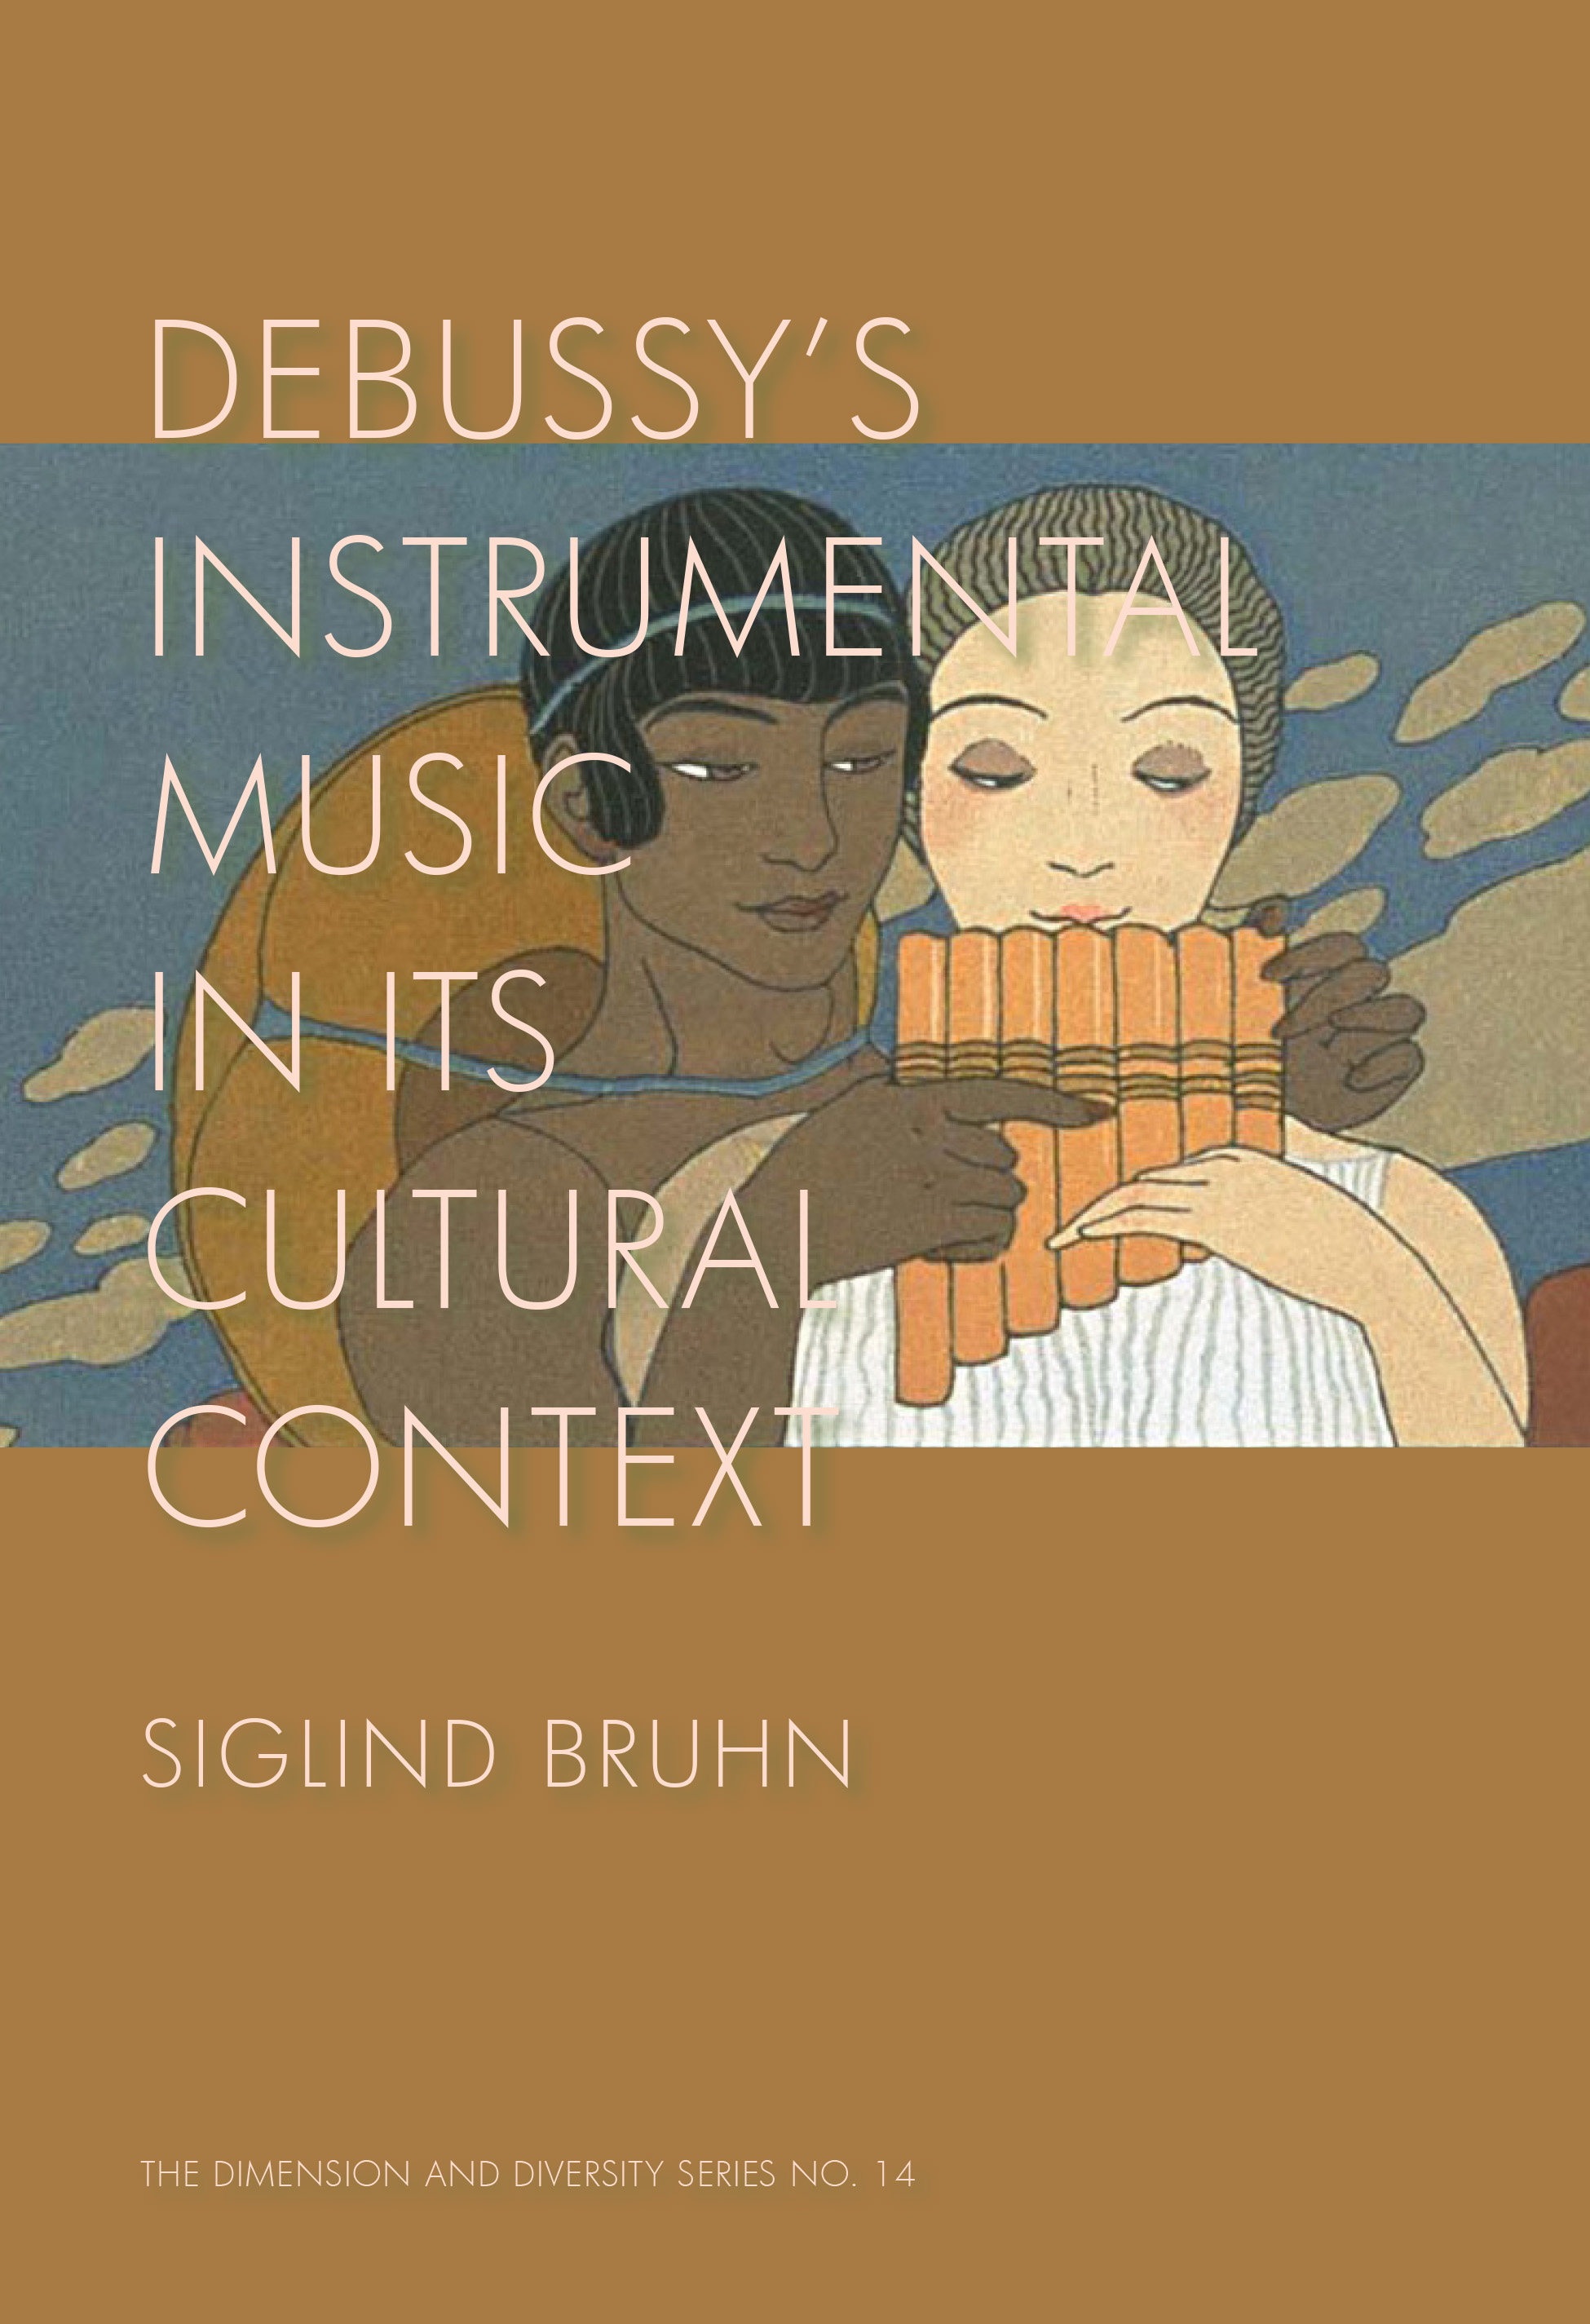 Debussy's Instrumental Music in its Cultural Context